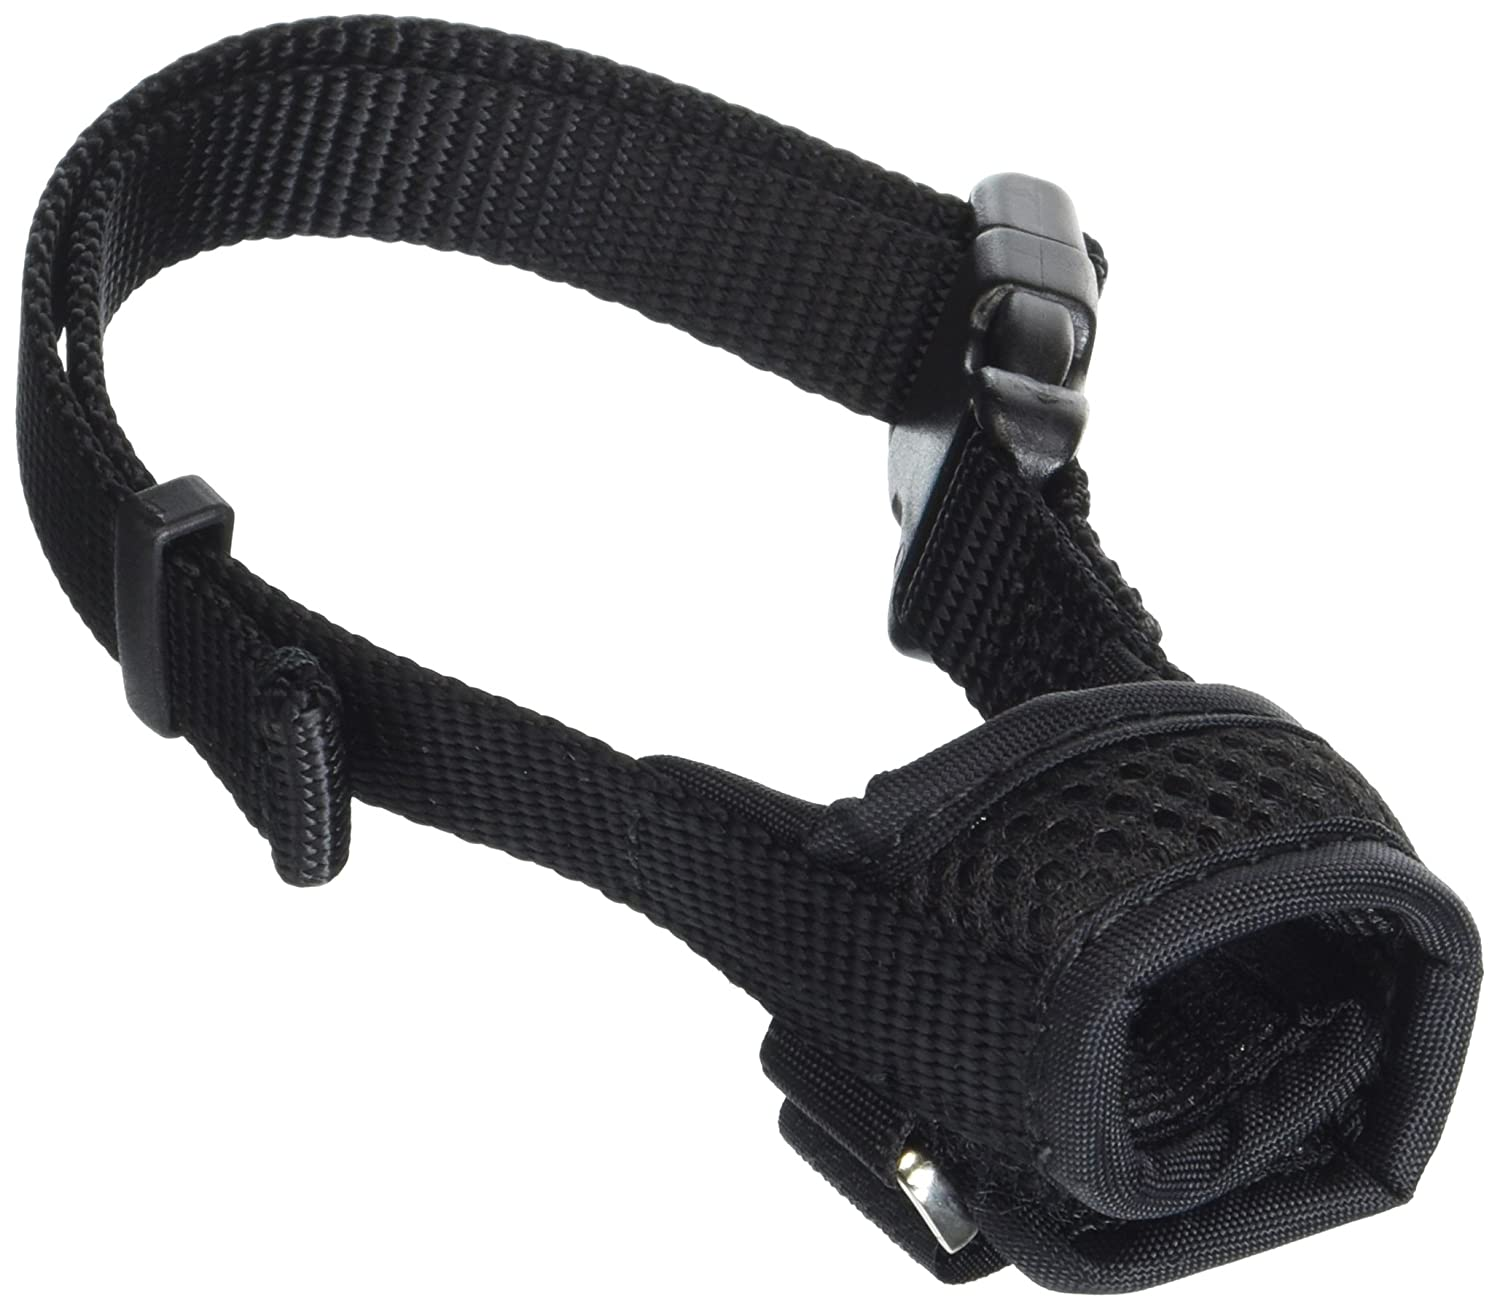 Coastal Pet Products 01360 BLKXSM Best Fit Comfort Dog Muzzle-Snout Size Harnesses, Black, 3'-3.75' 3-3.75 Notions - In Network